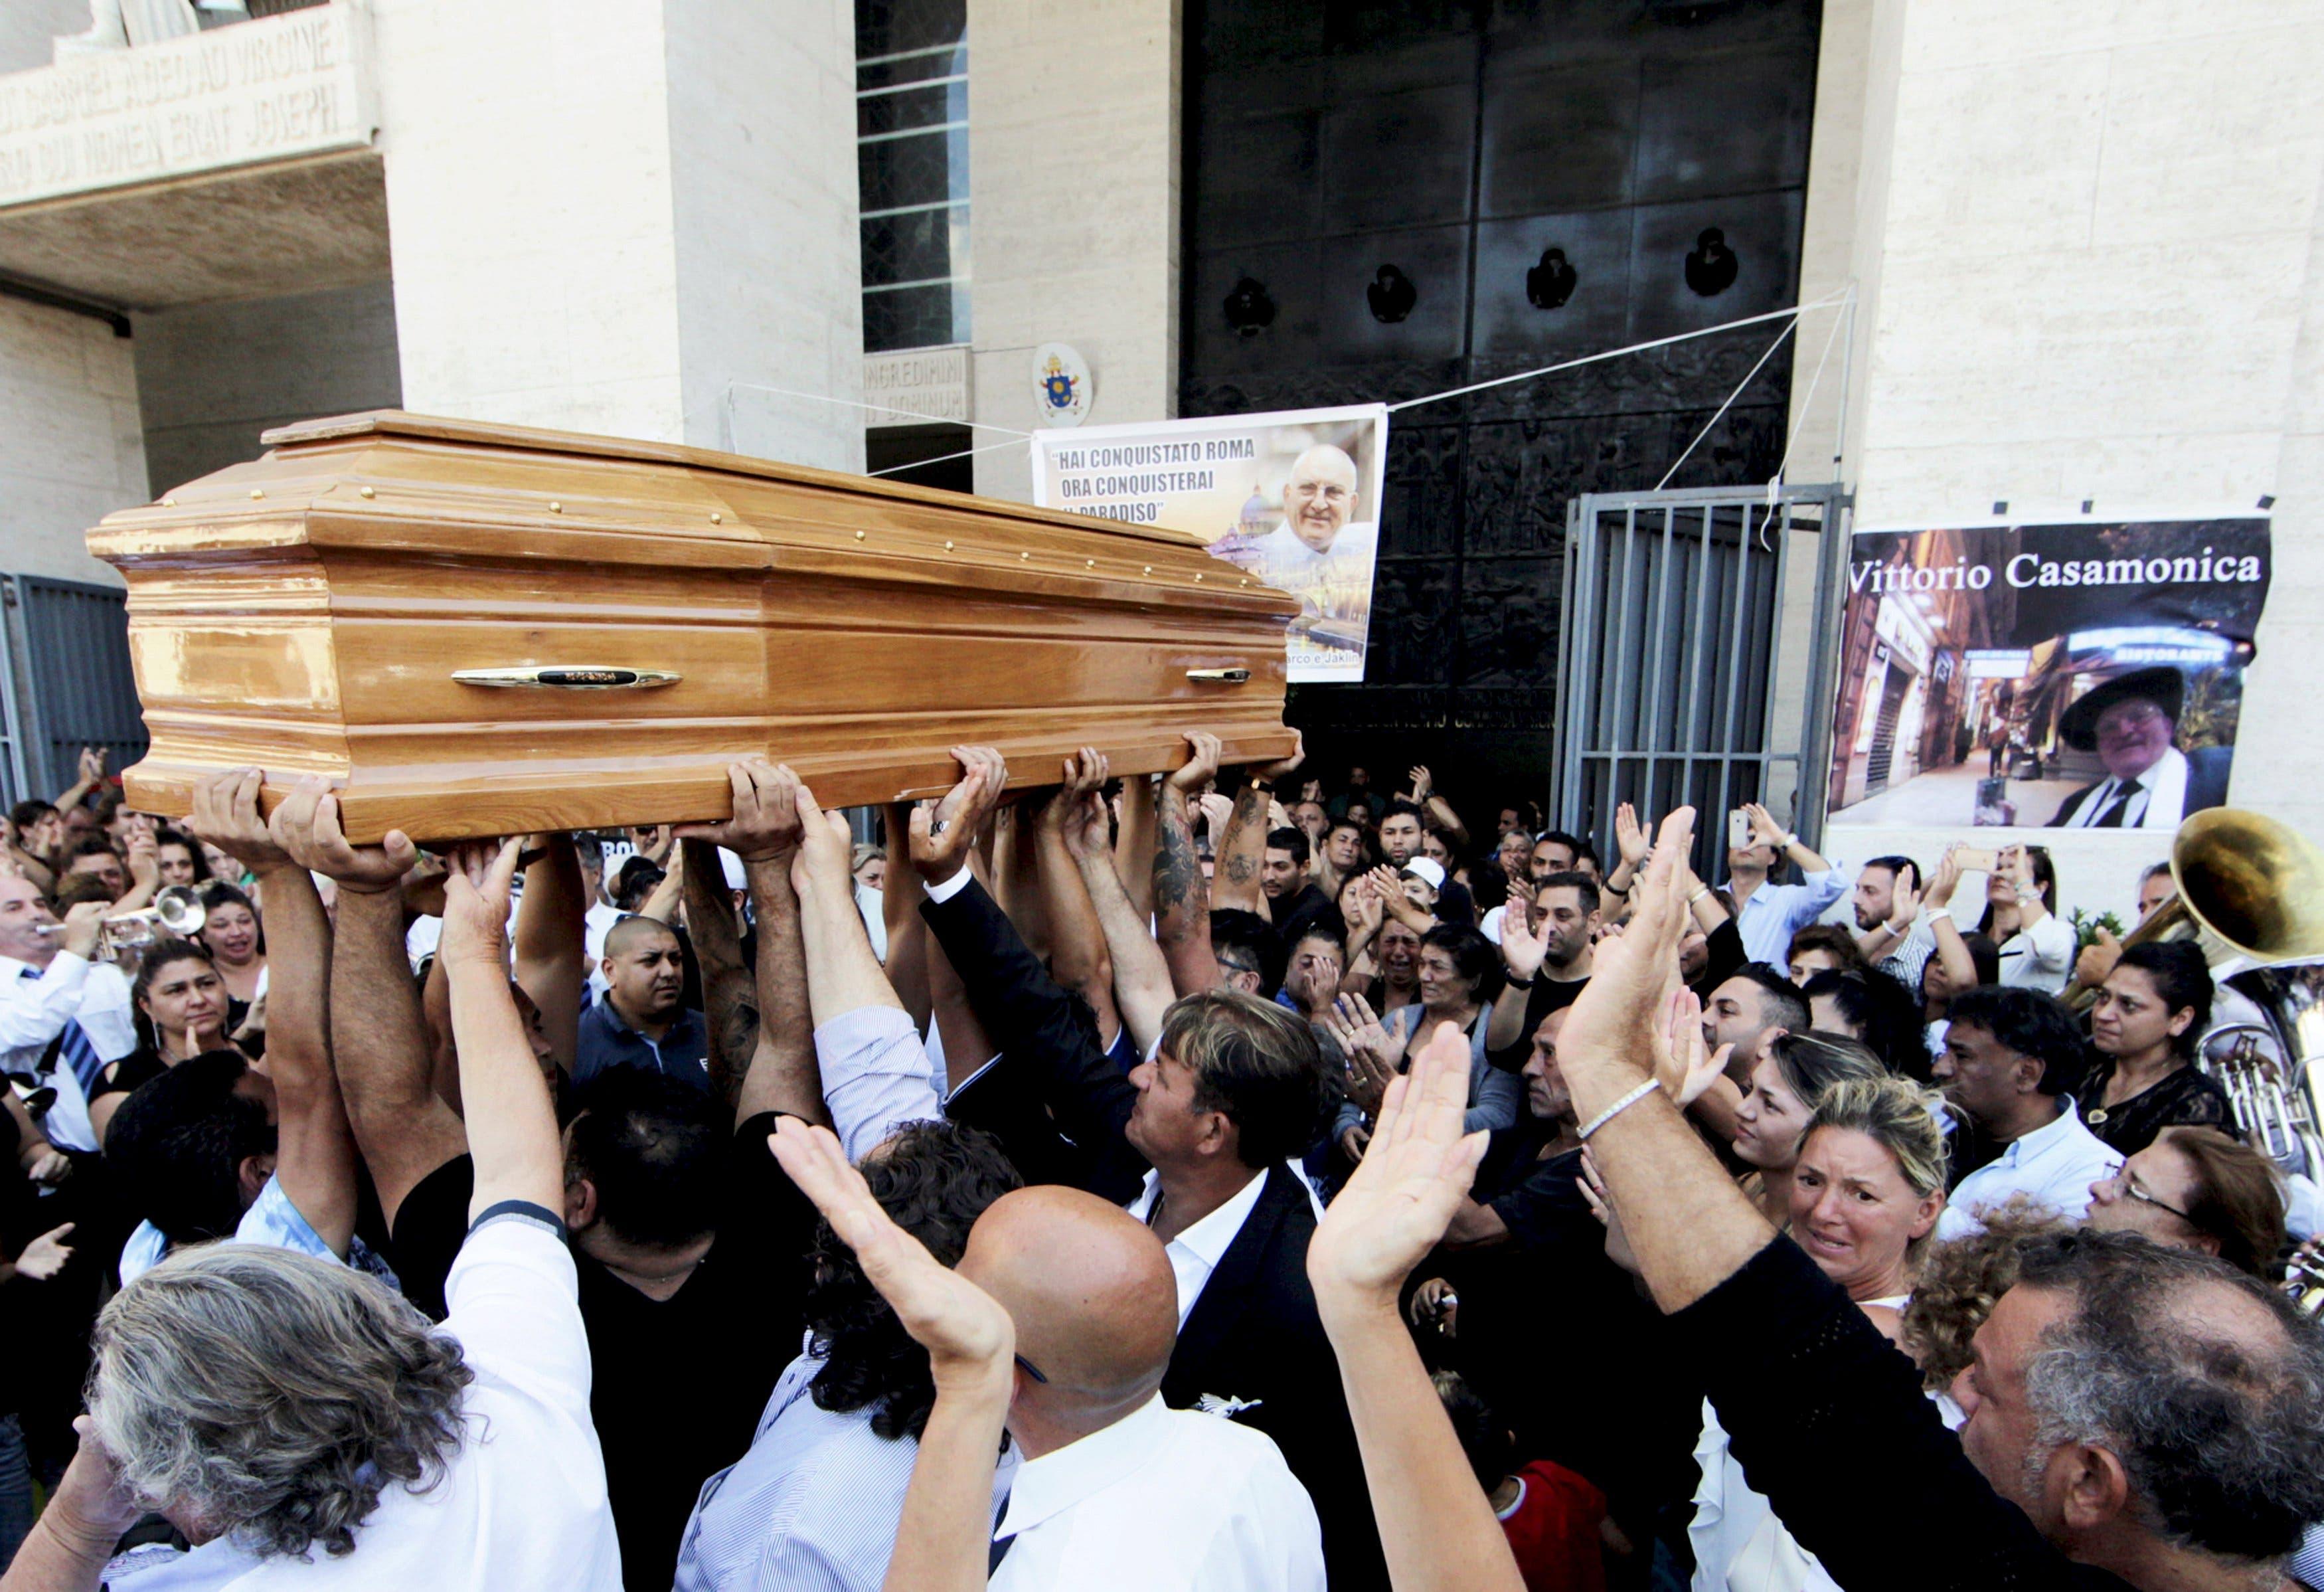 People carries the body of Vittorio Casamonica into a Roman Catholic basilica in a Rome suburb, where the funeral mass was celebrated, August 20, 2015.  (Reuters)